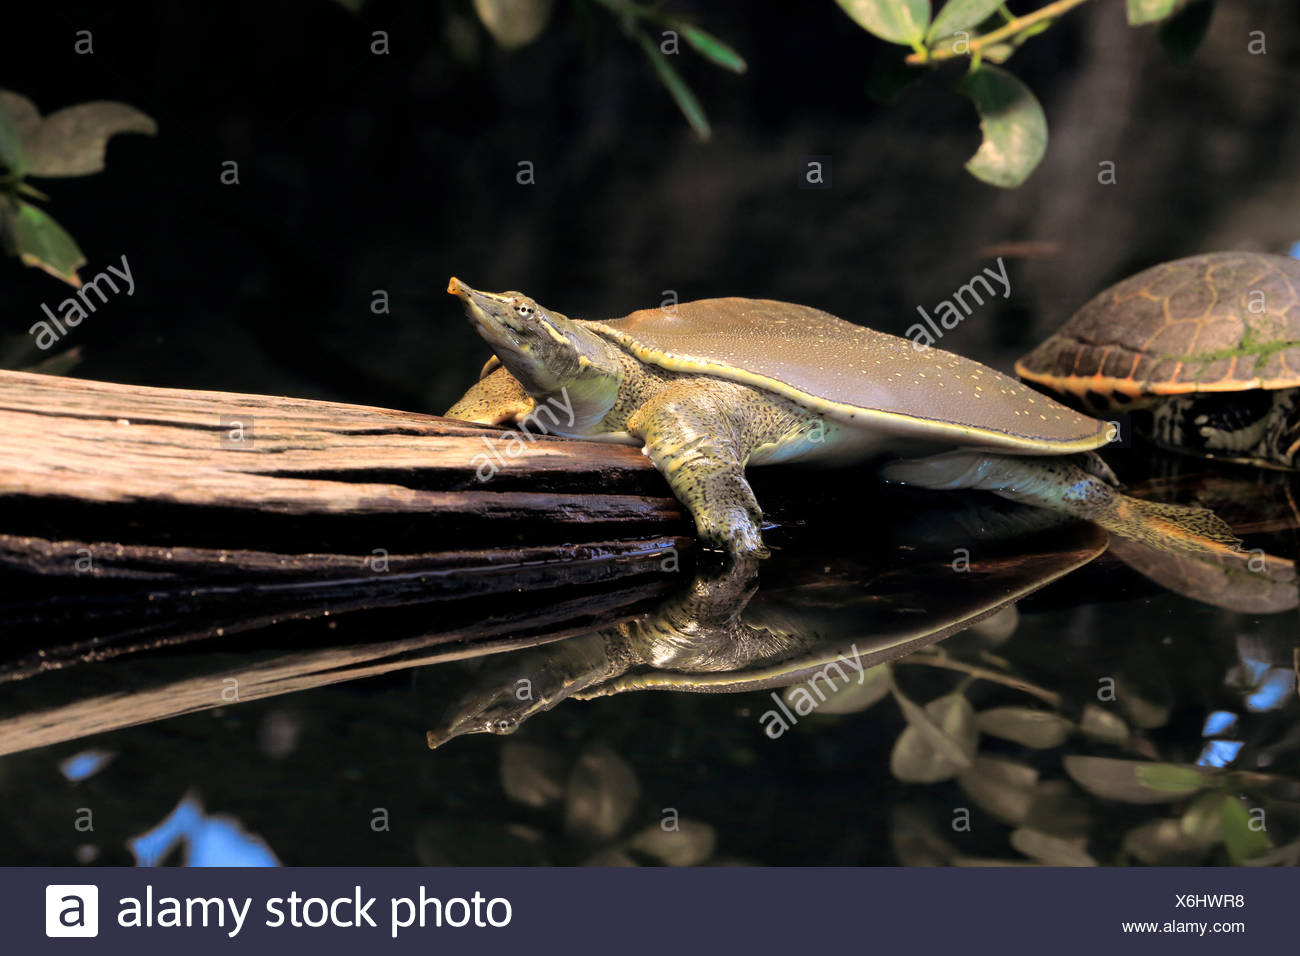 Spiny softshell turtle/, adult, North America / (Apalone spinifera) - Stock Image